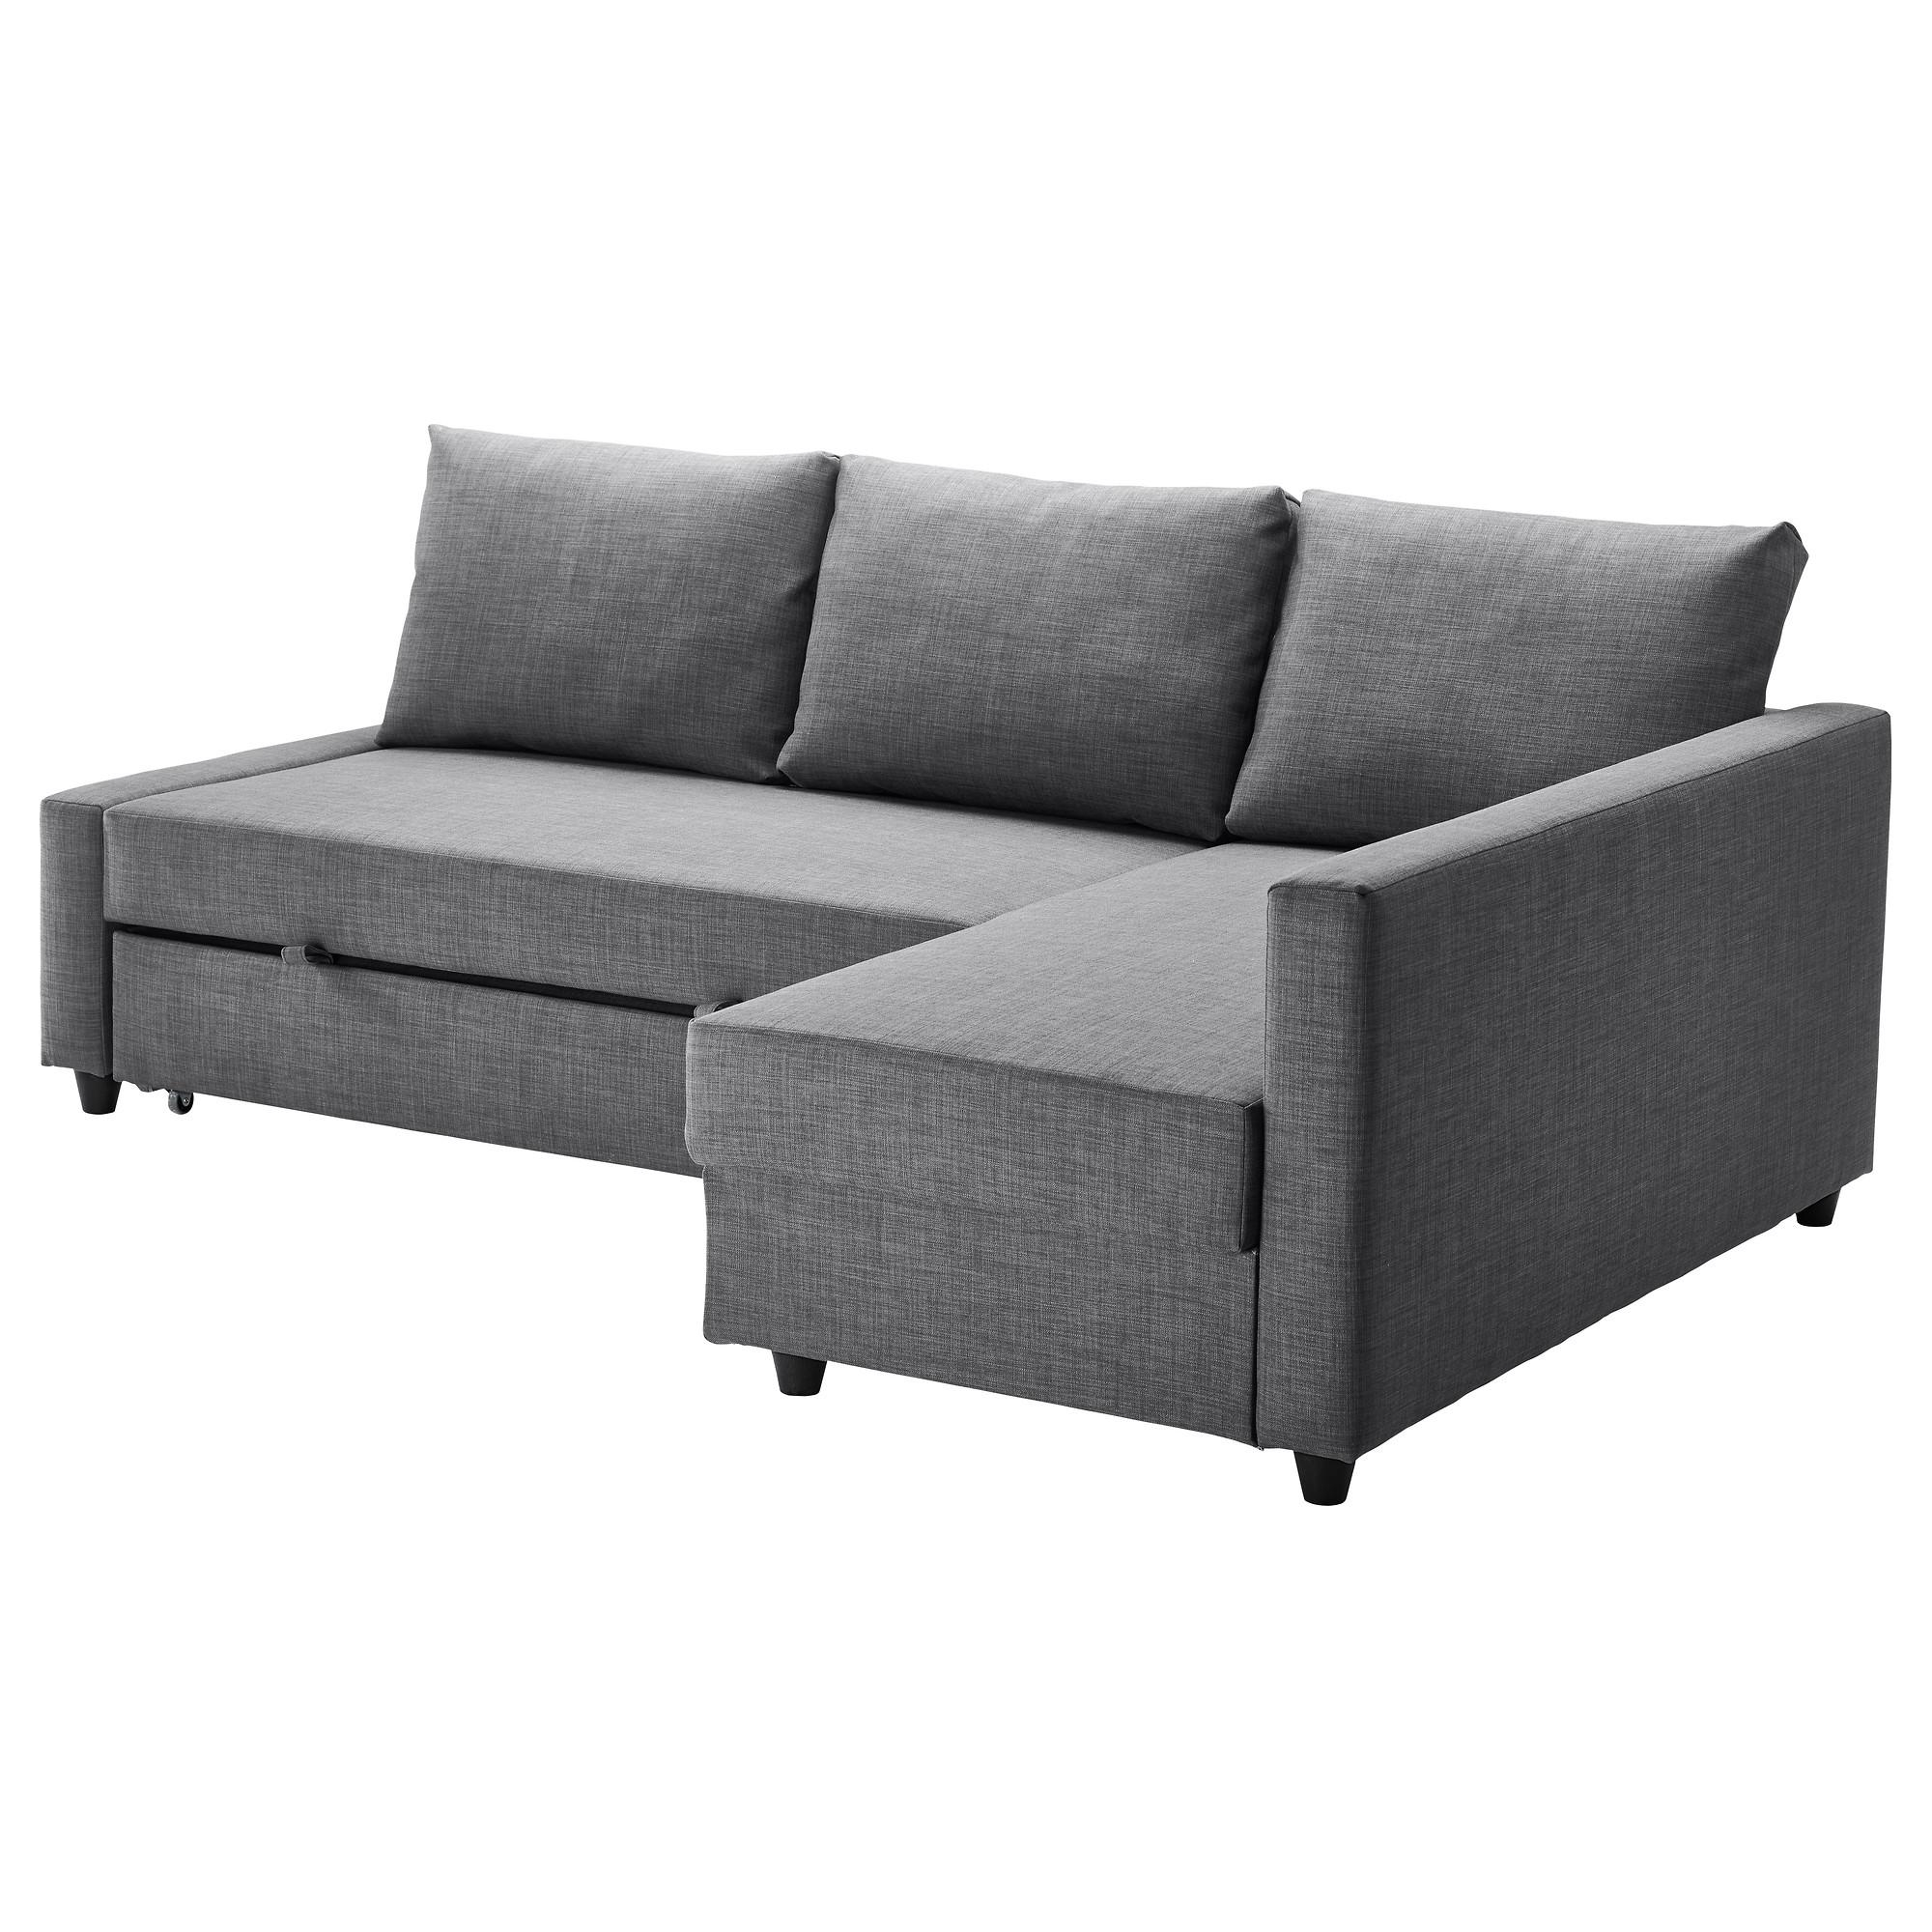 Friheten Corner Sofa Bed With Storage Skiftebo Dark Grey – Ikea Throughout Sofa Chairs Ikea (Image 7 of 20)